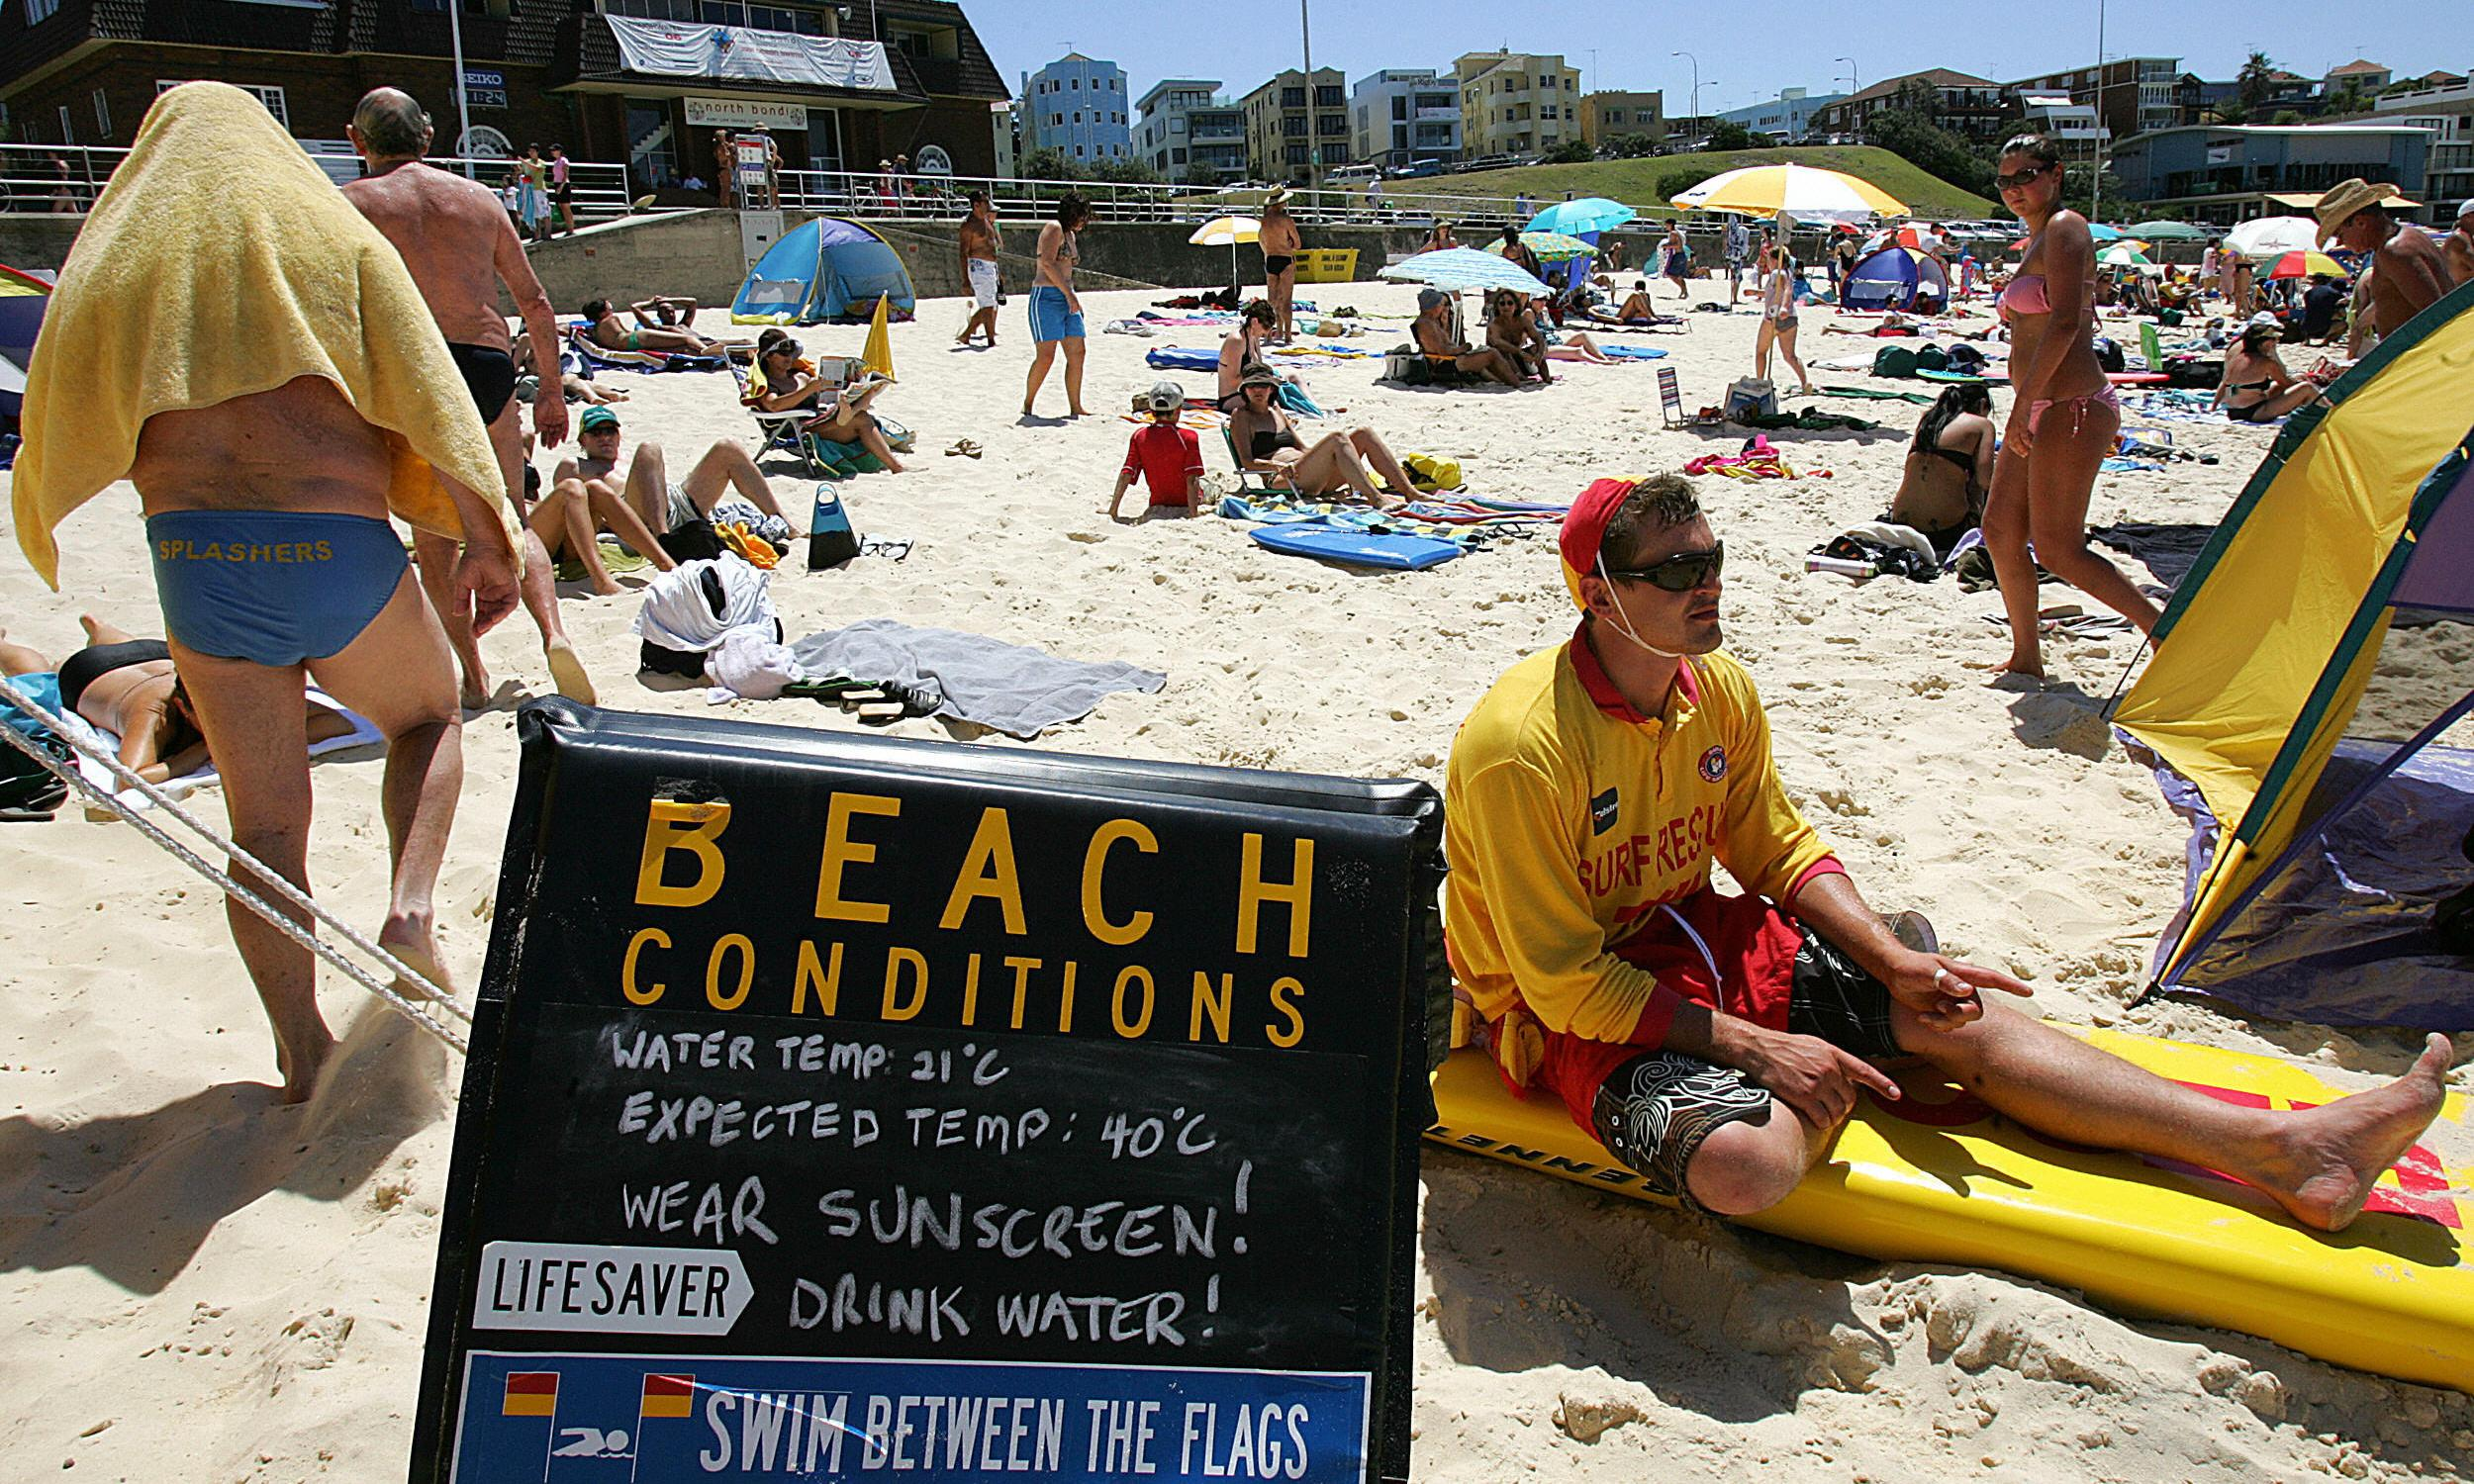 'It's like hell here': Australia bakes as record temperatures nudge 50C